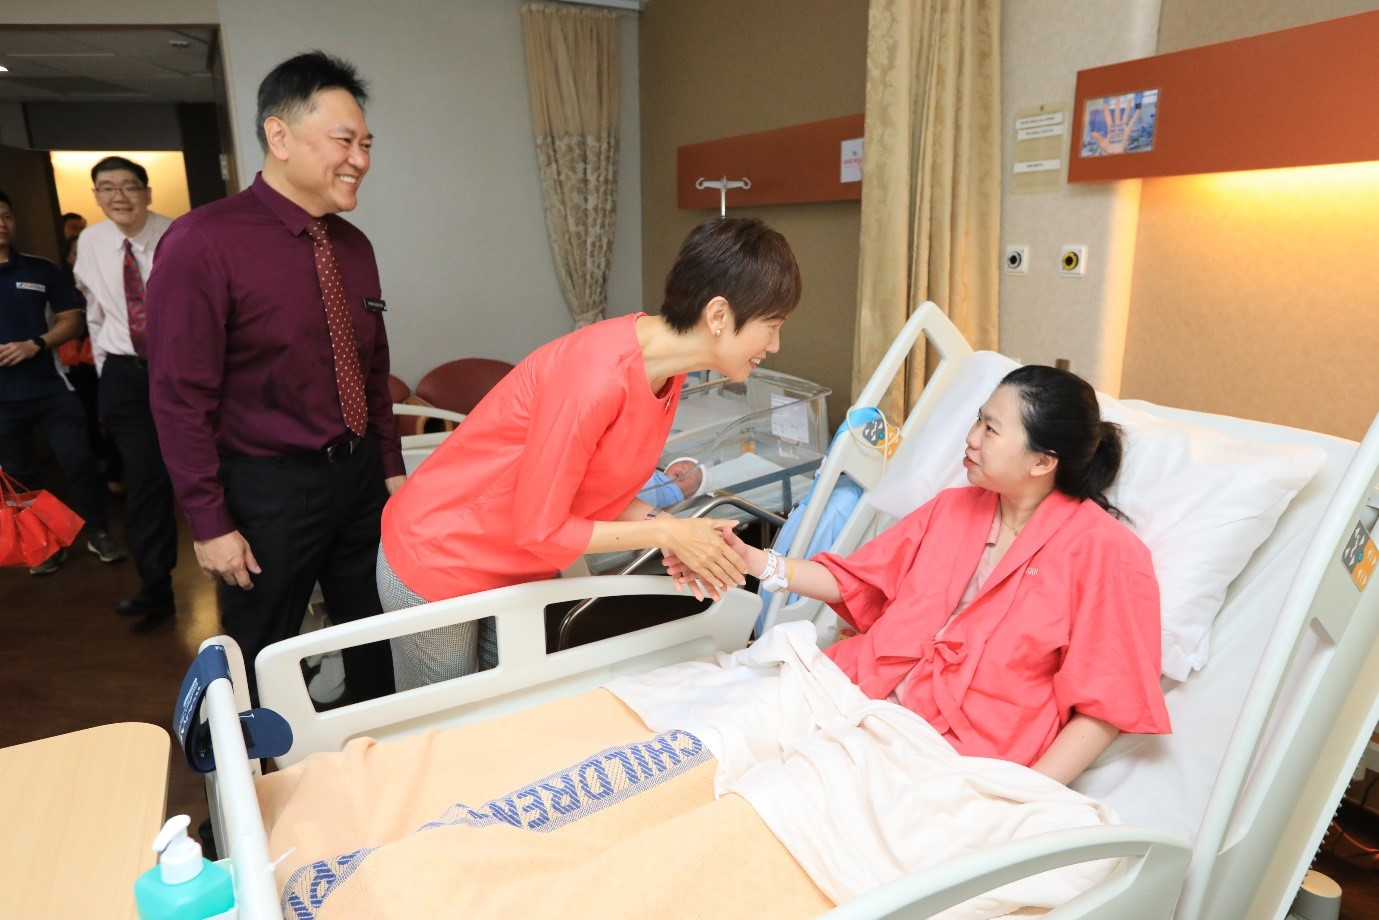 Minister Josephine Teo and Professor Alex Sia (Chief Executive Officer, KKH Women's and Children's Hospital) visiting Mdm Carina Seow who delivered her second child on 5 February, early Tuesday morning.